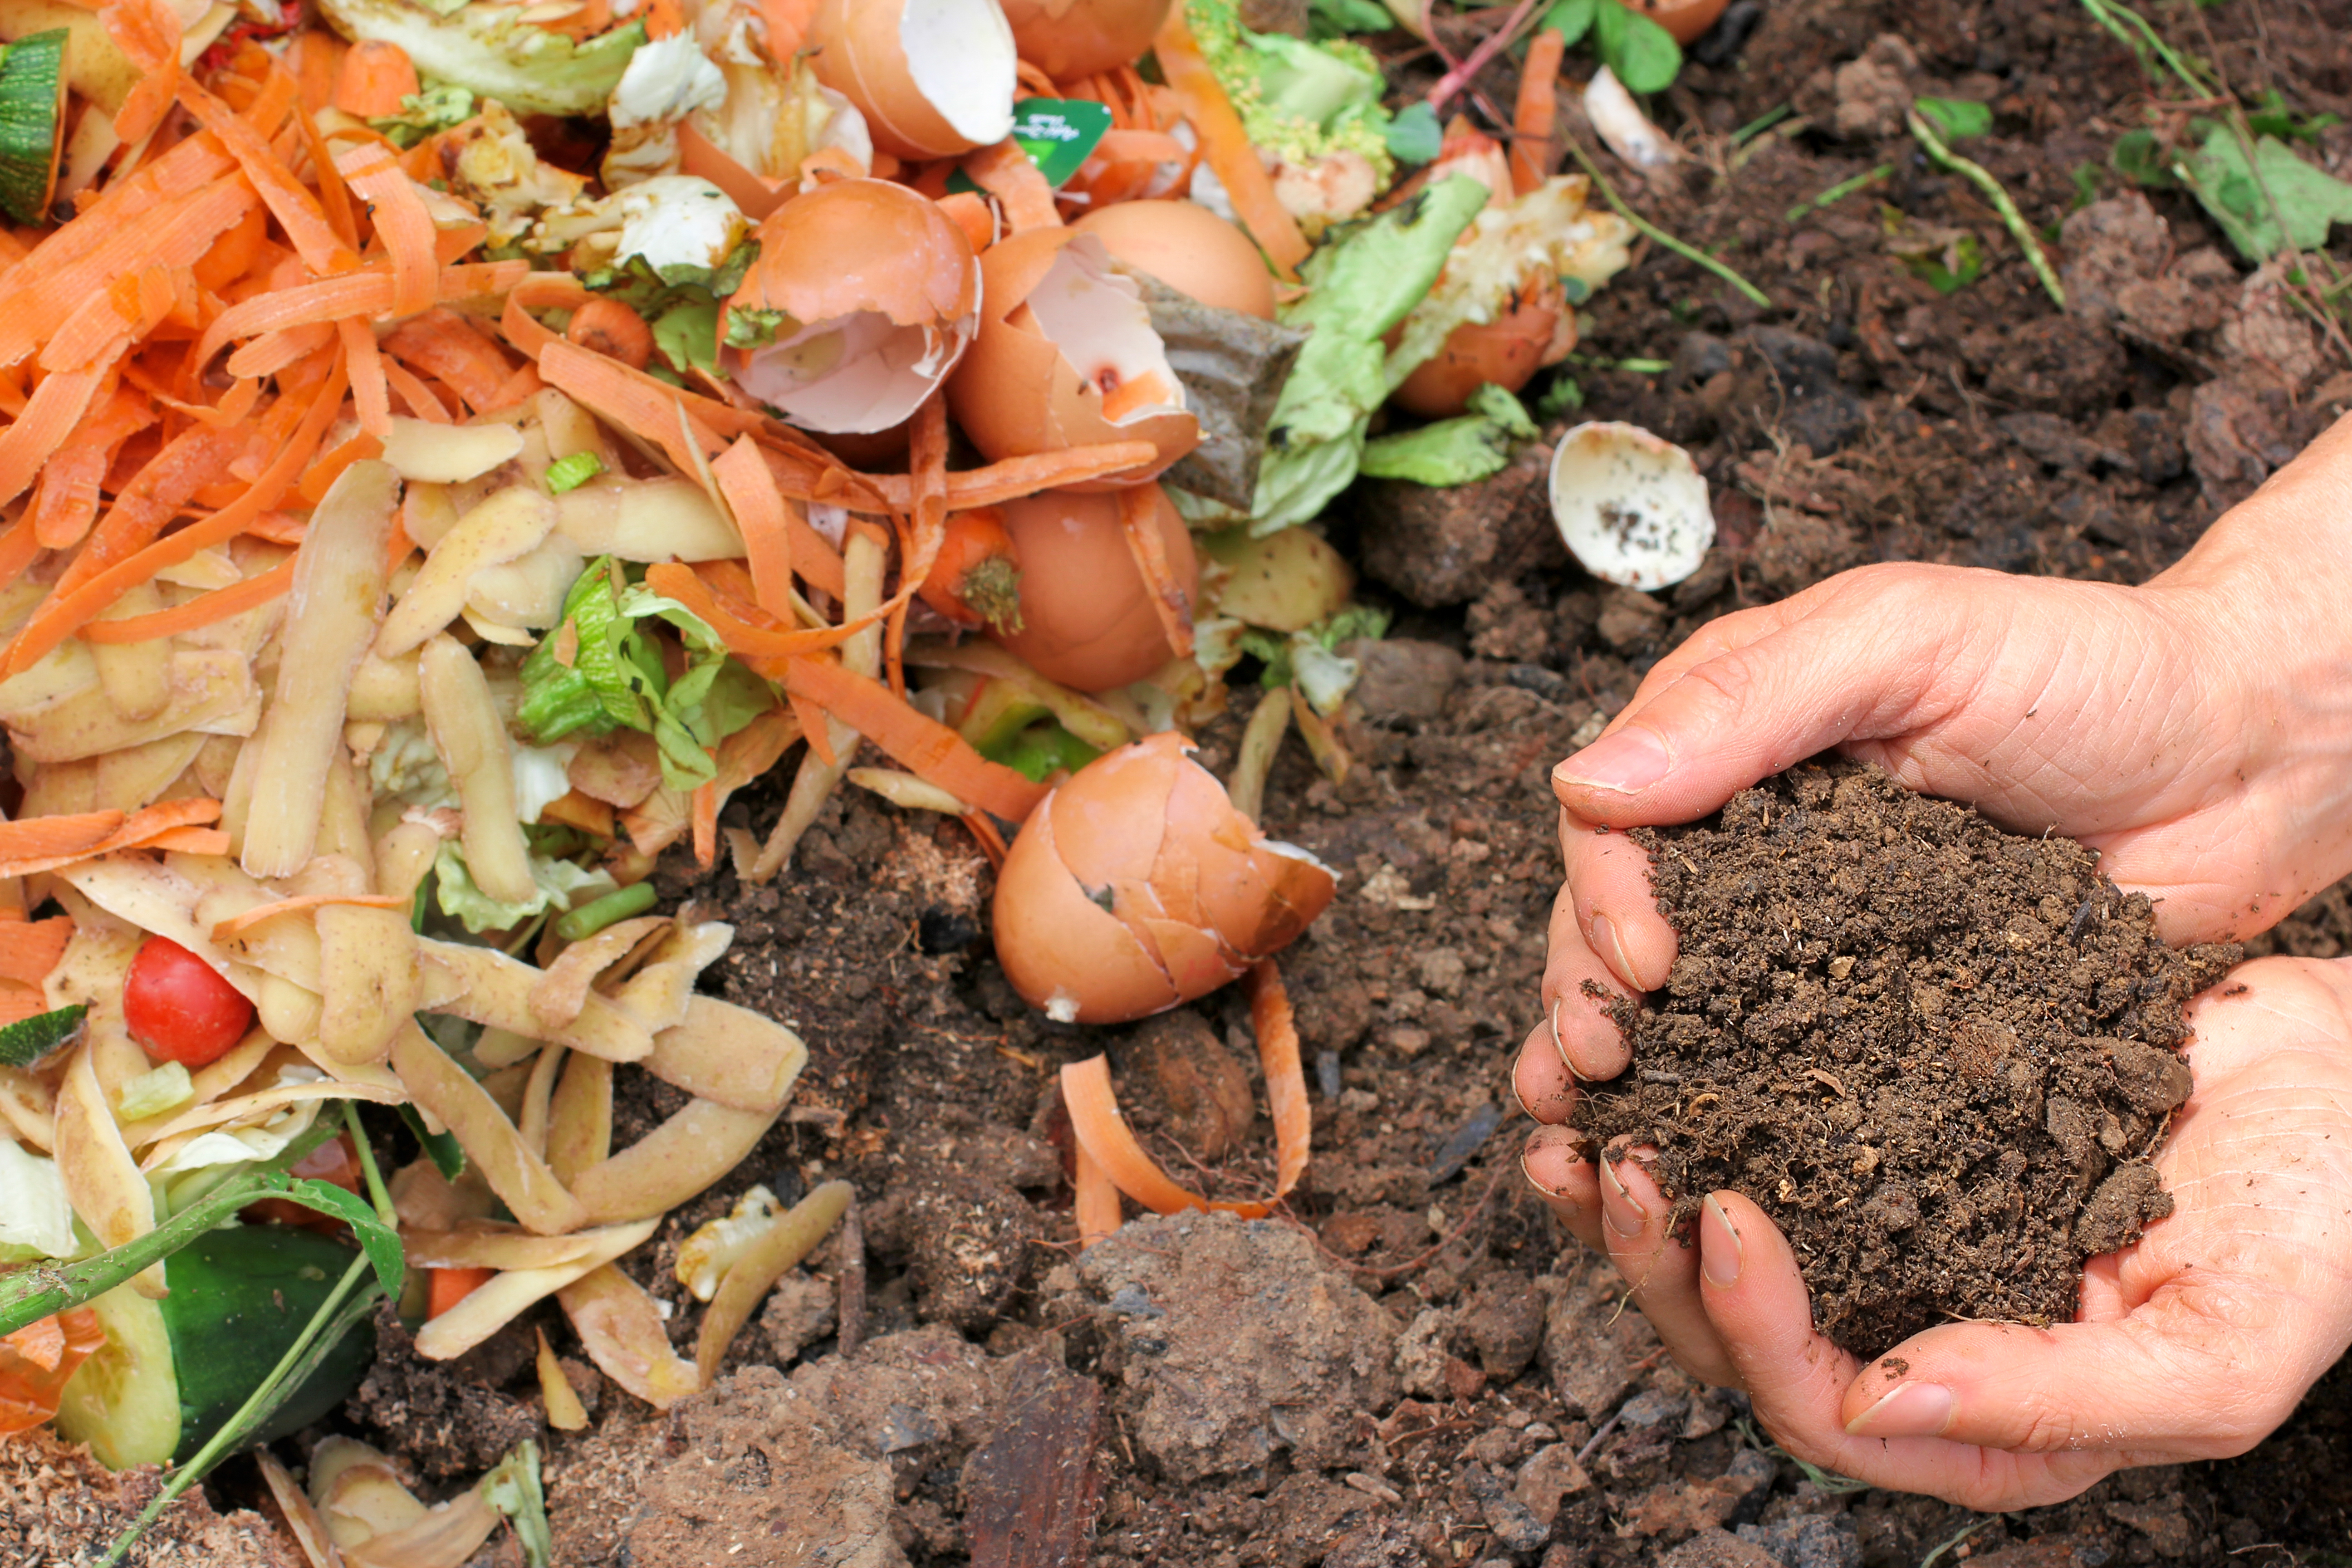 Food scraps, compost and soil